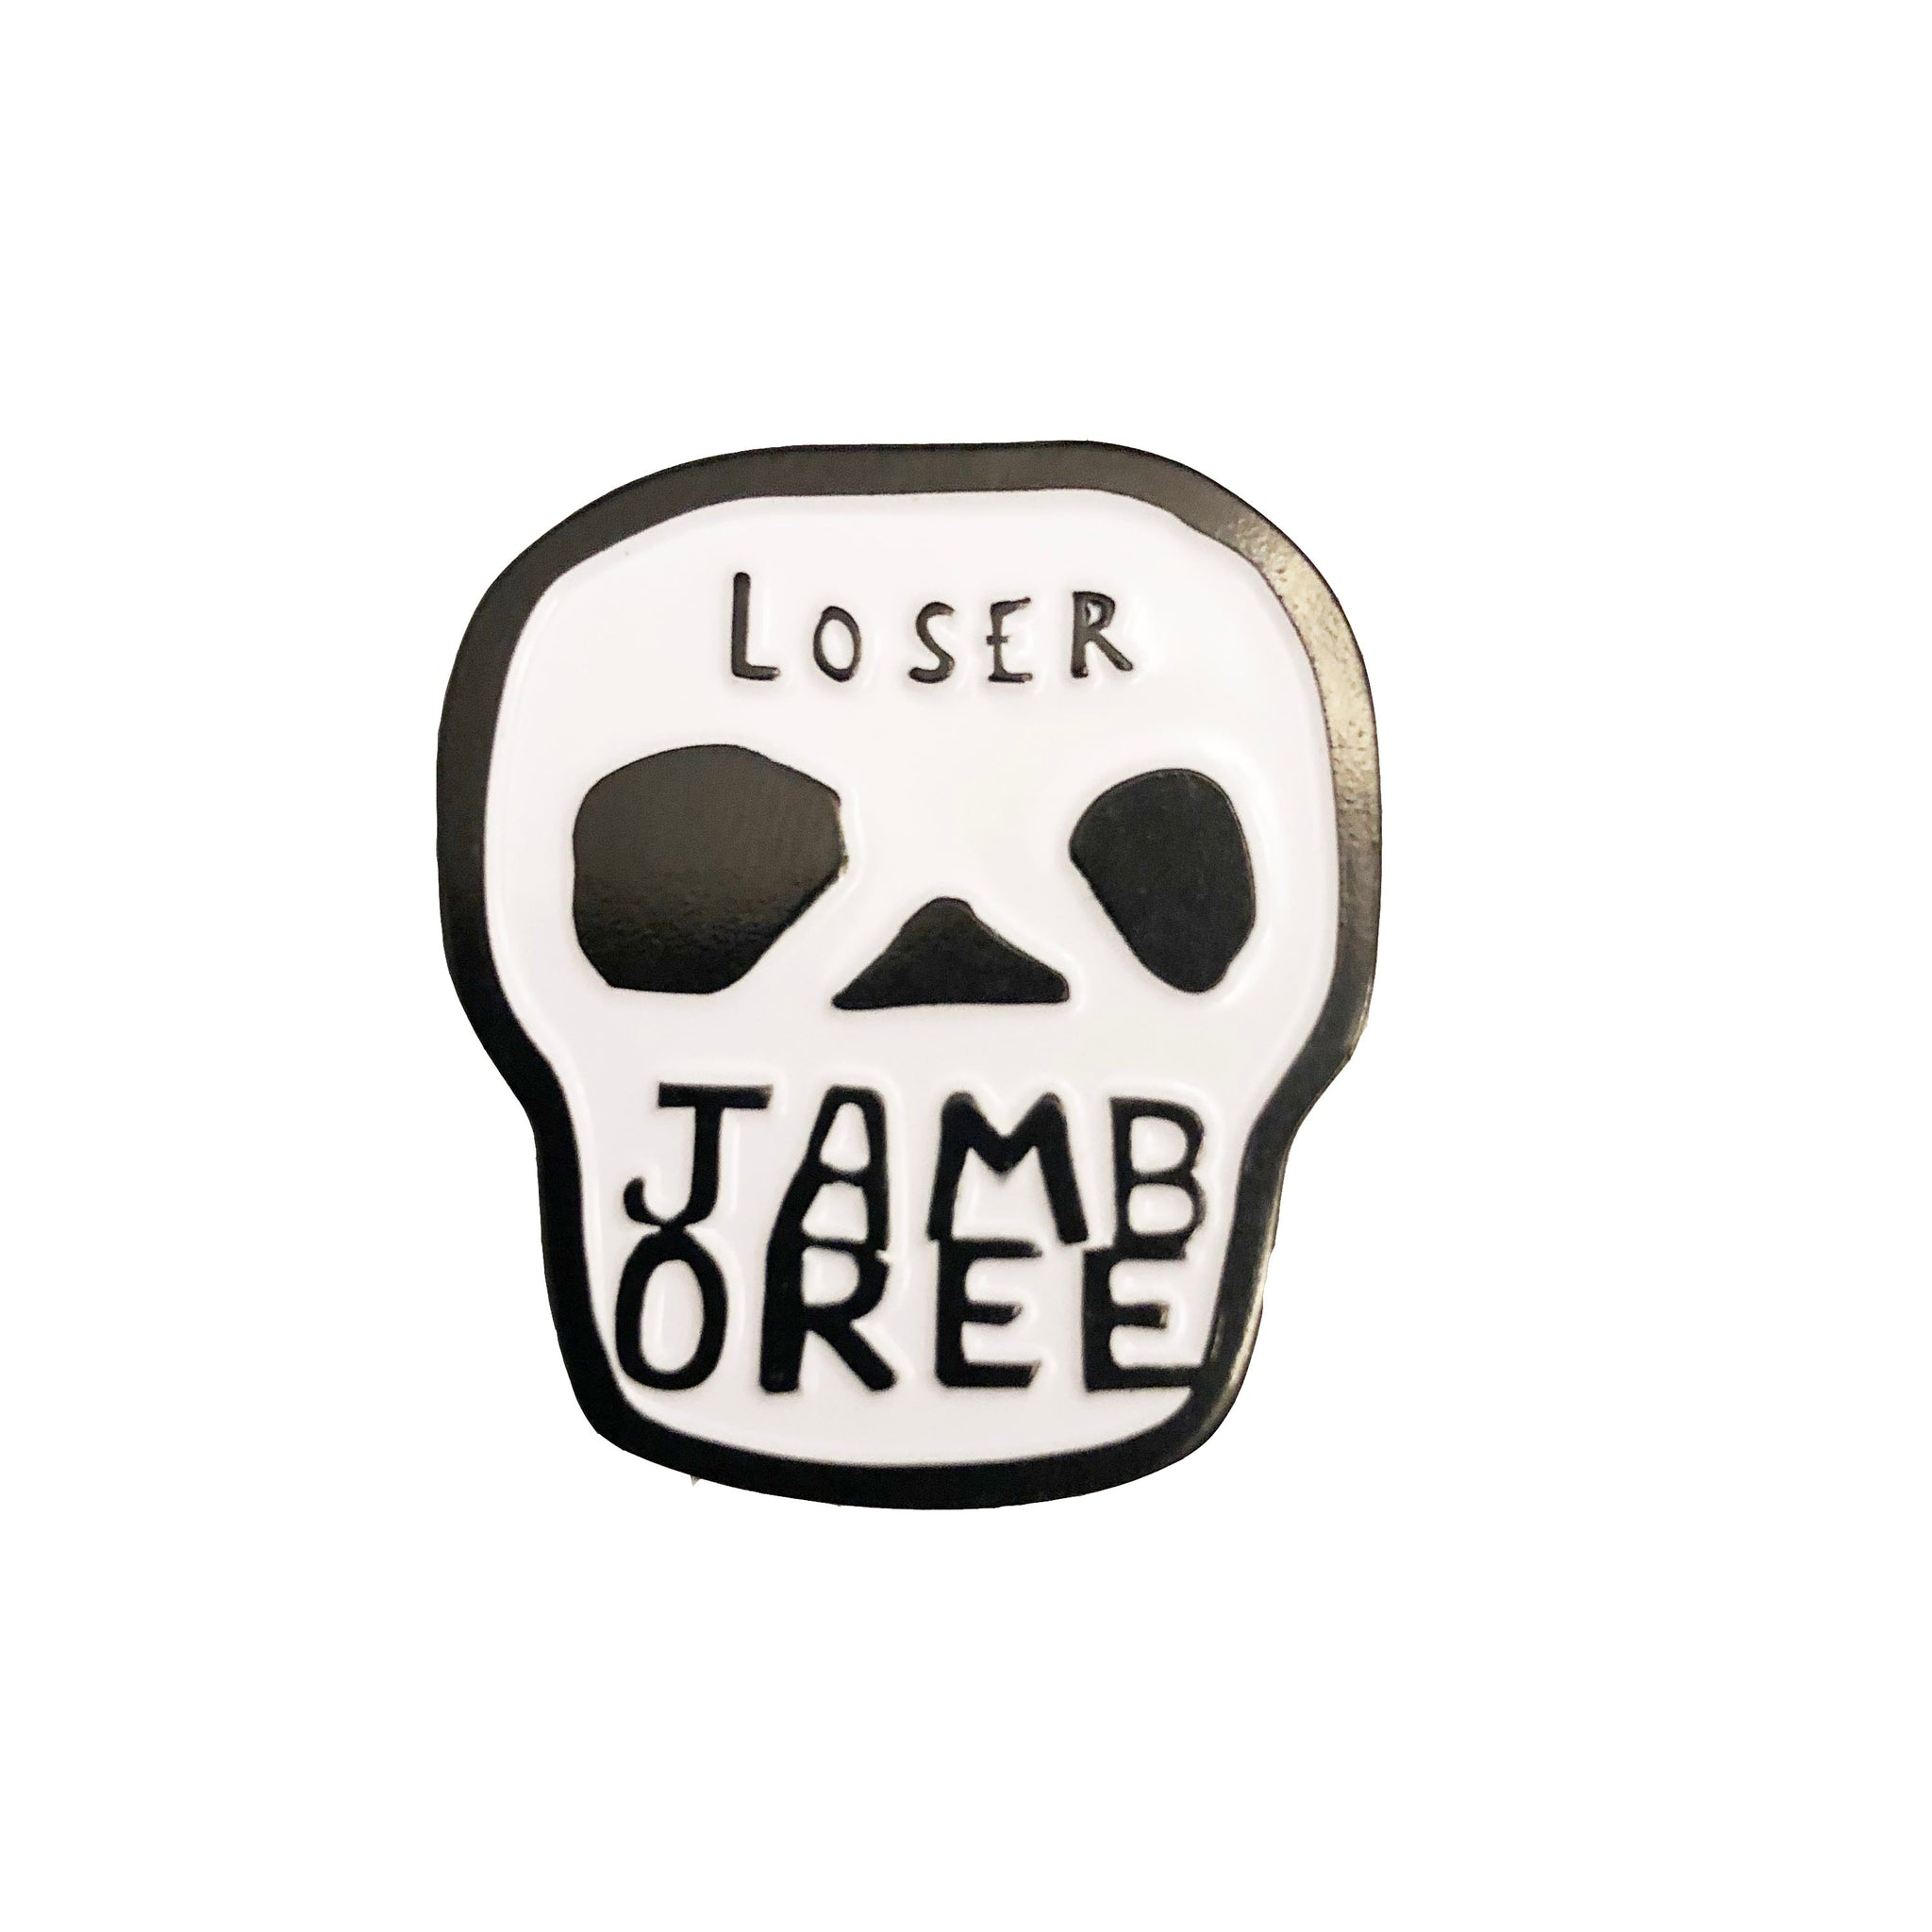 Loser Jamboree - Moteur Fucker Pin